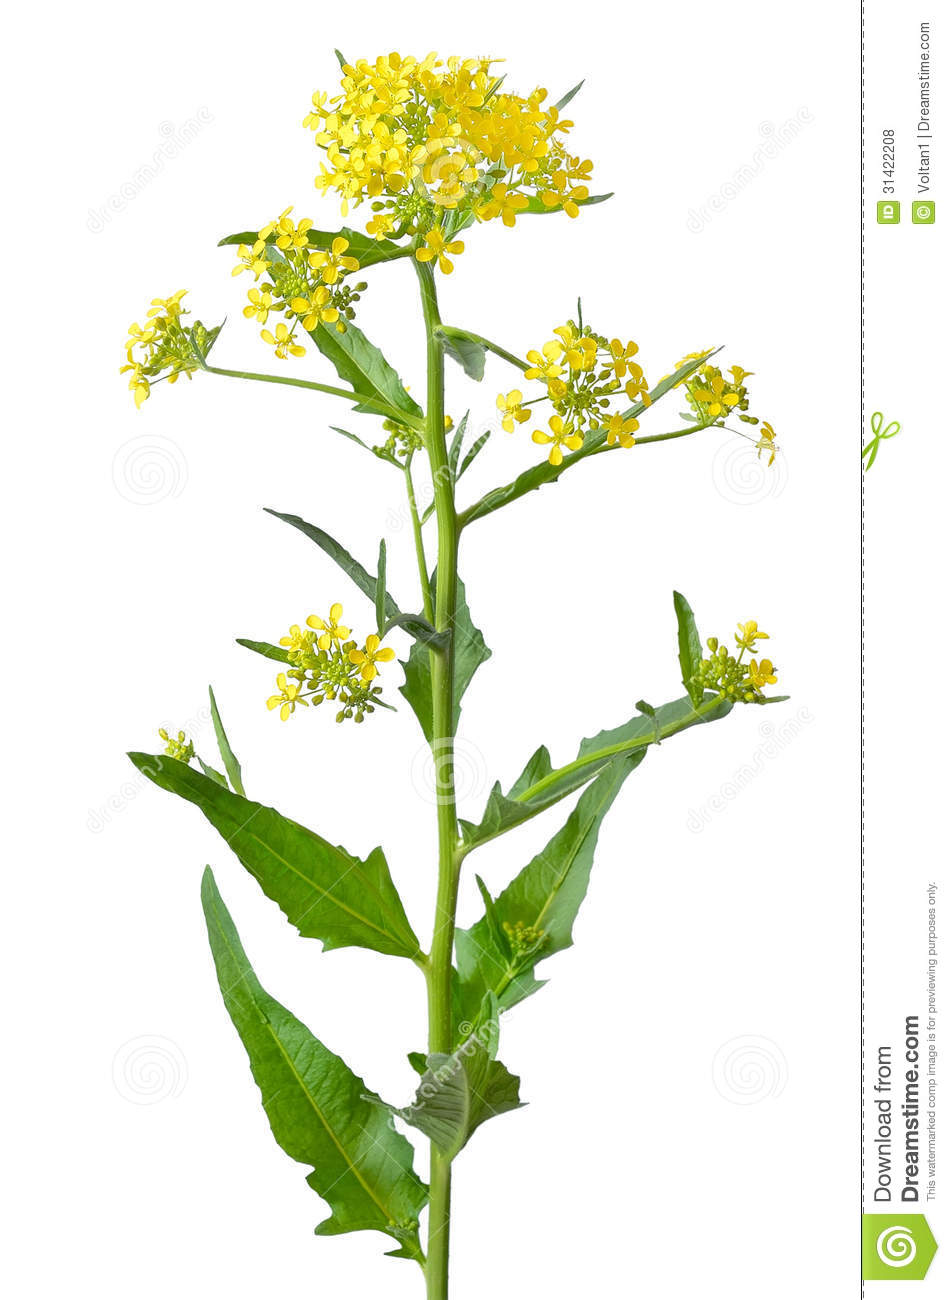 Brassica Campestris Flower Royalty Free Stock Photos.